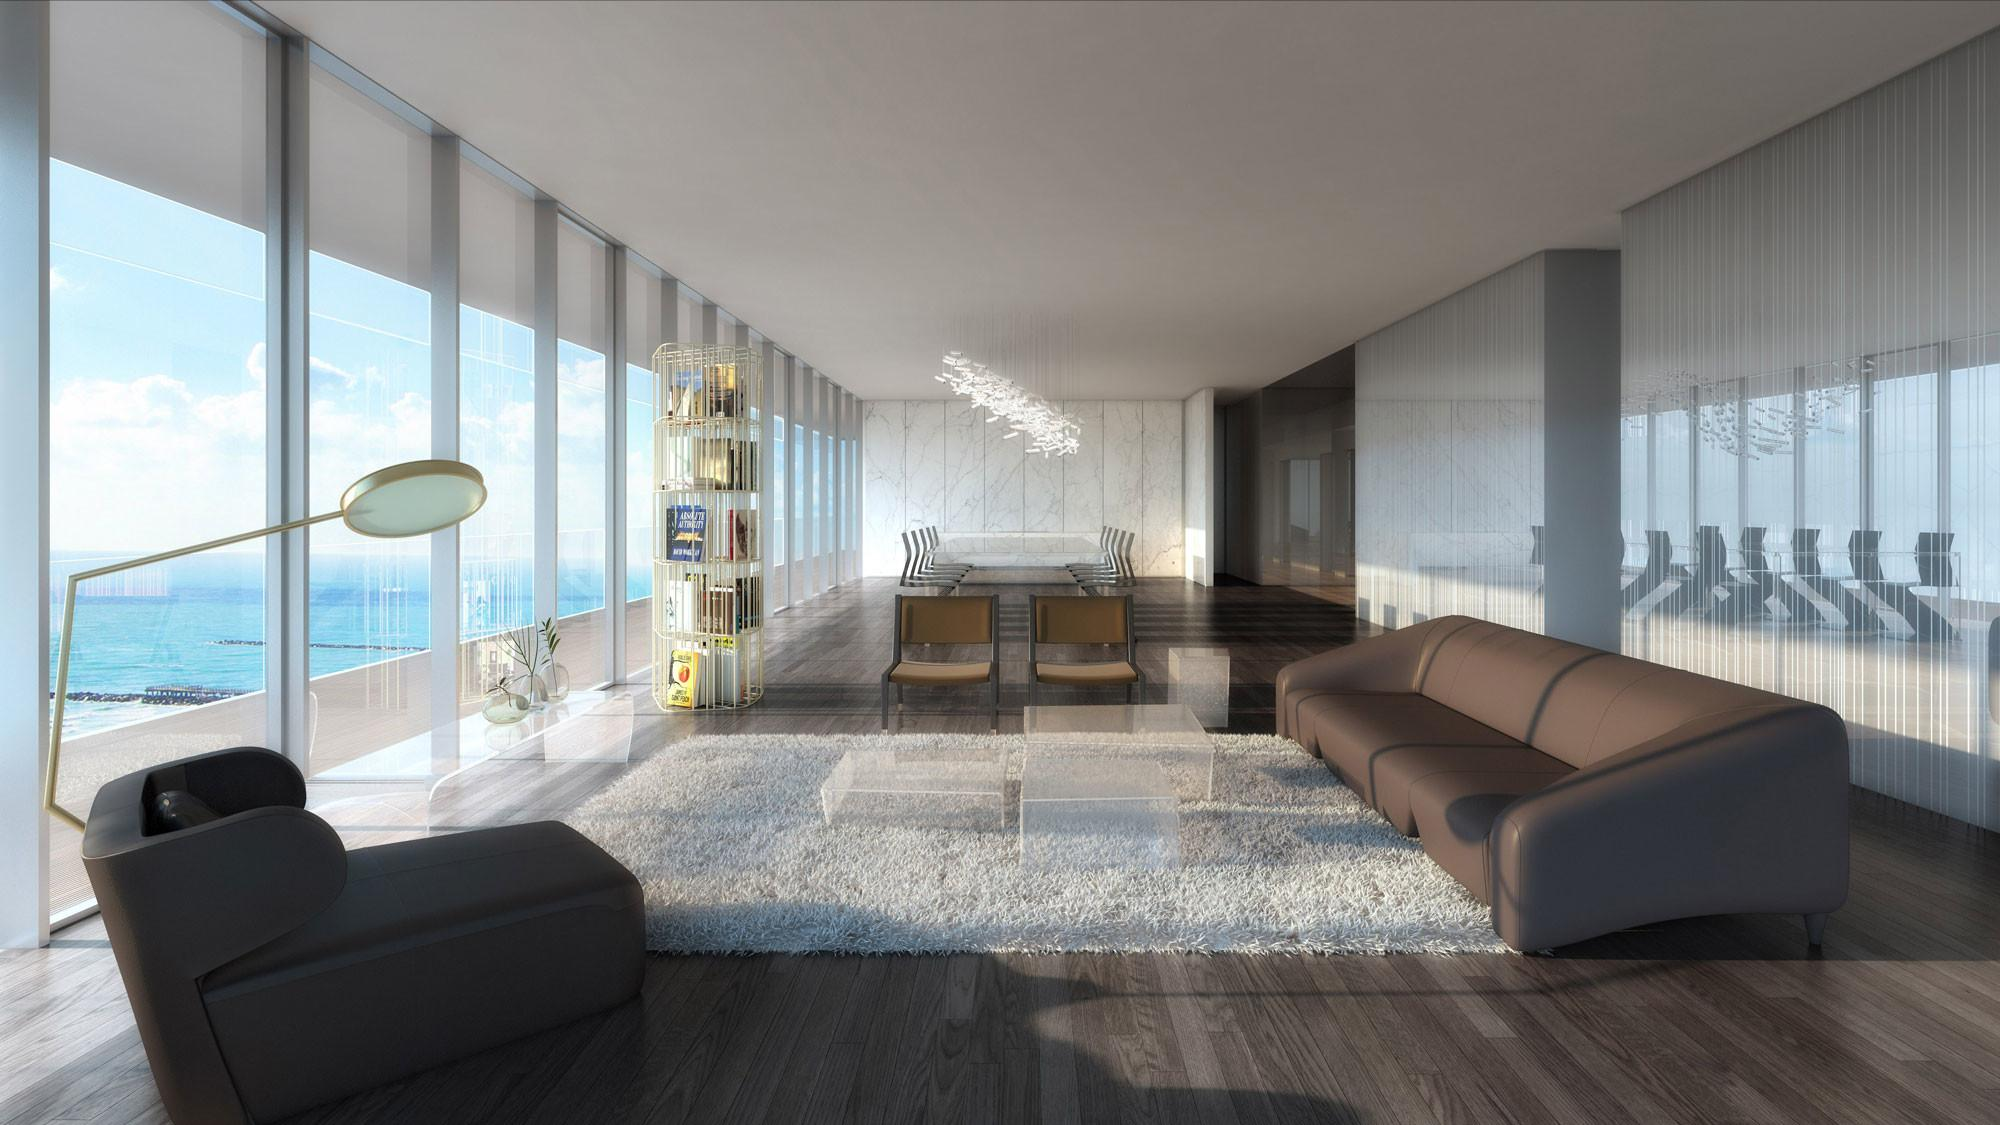 New Luxury High Rise Reflects Resurgent Condo Market